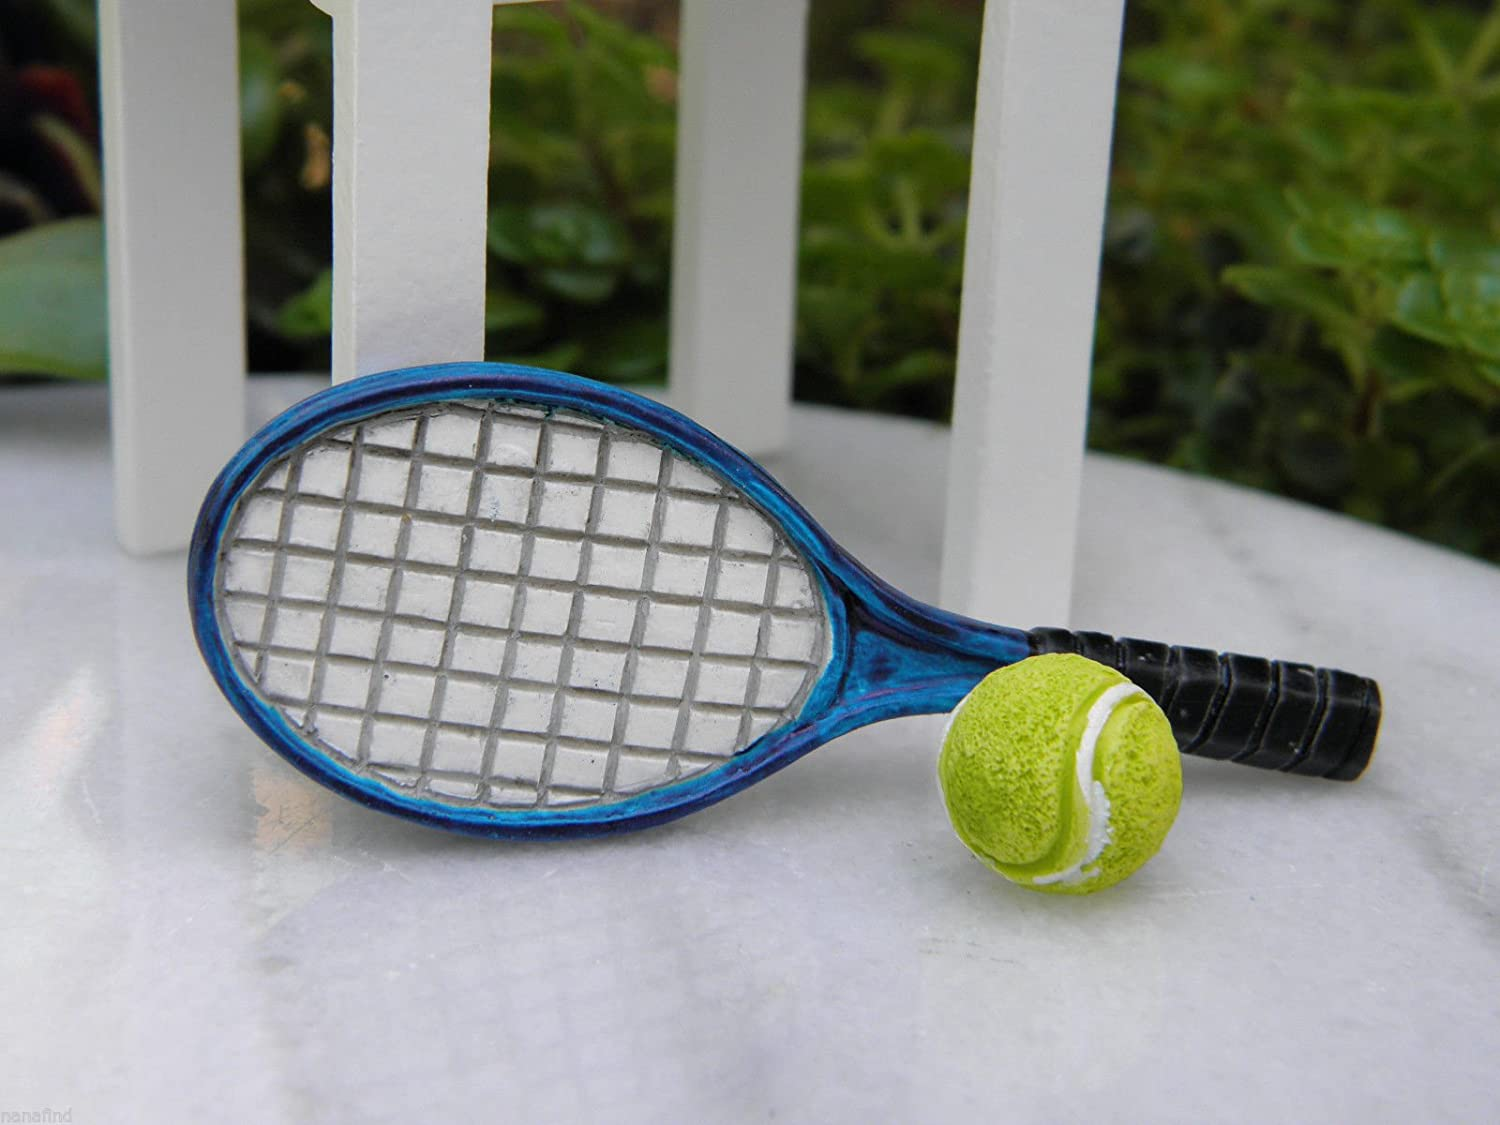 Miniature Dollhouse Fairy Garden Accessories Tennis Racket & Ball